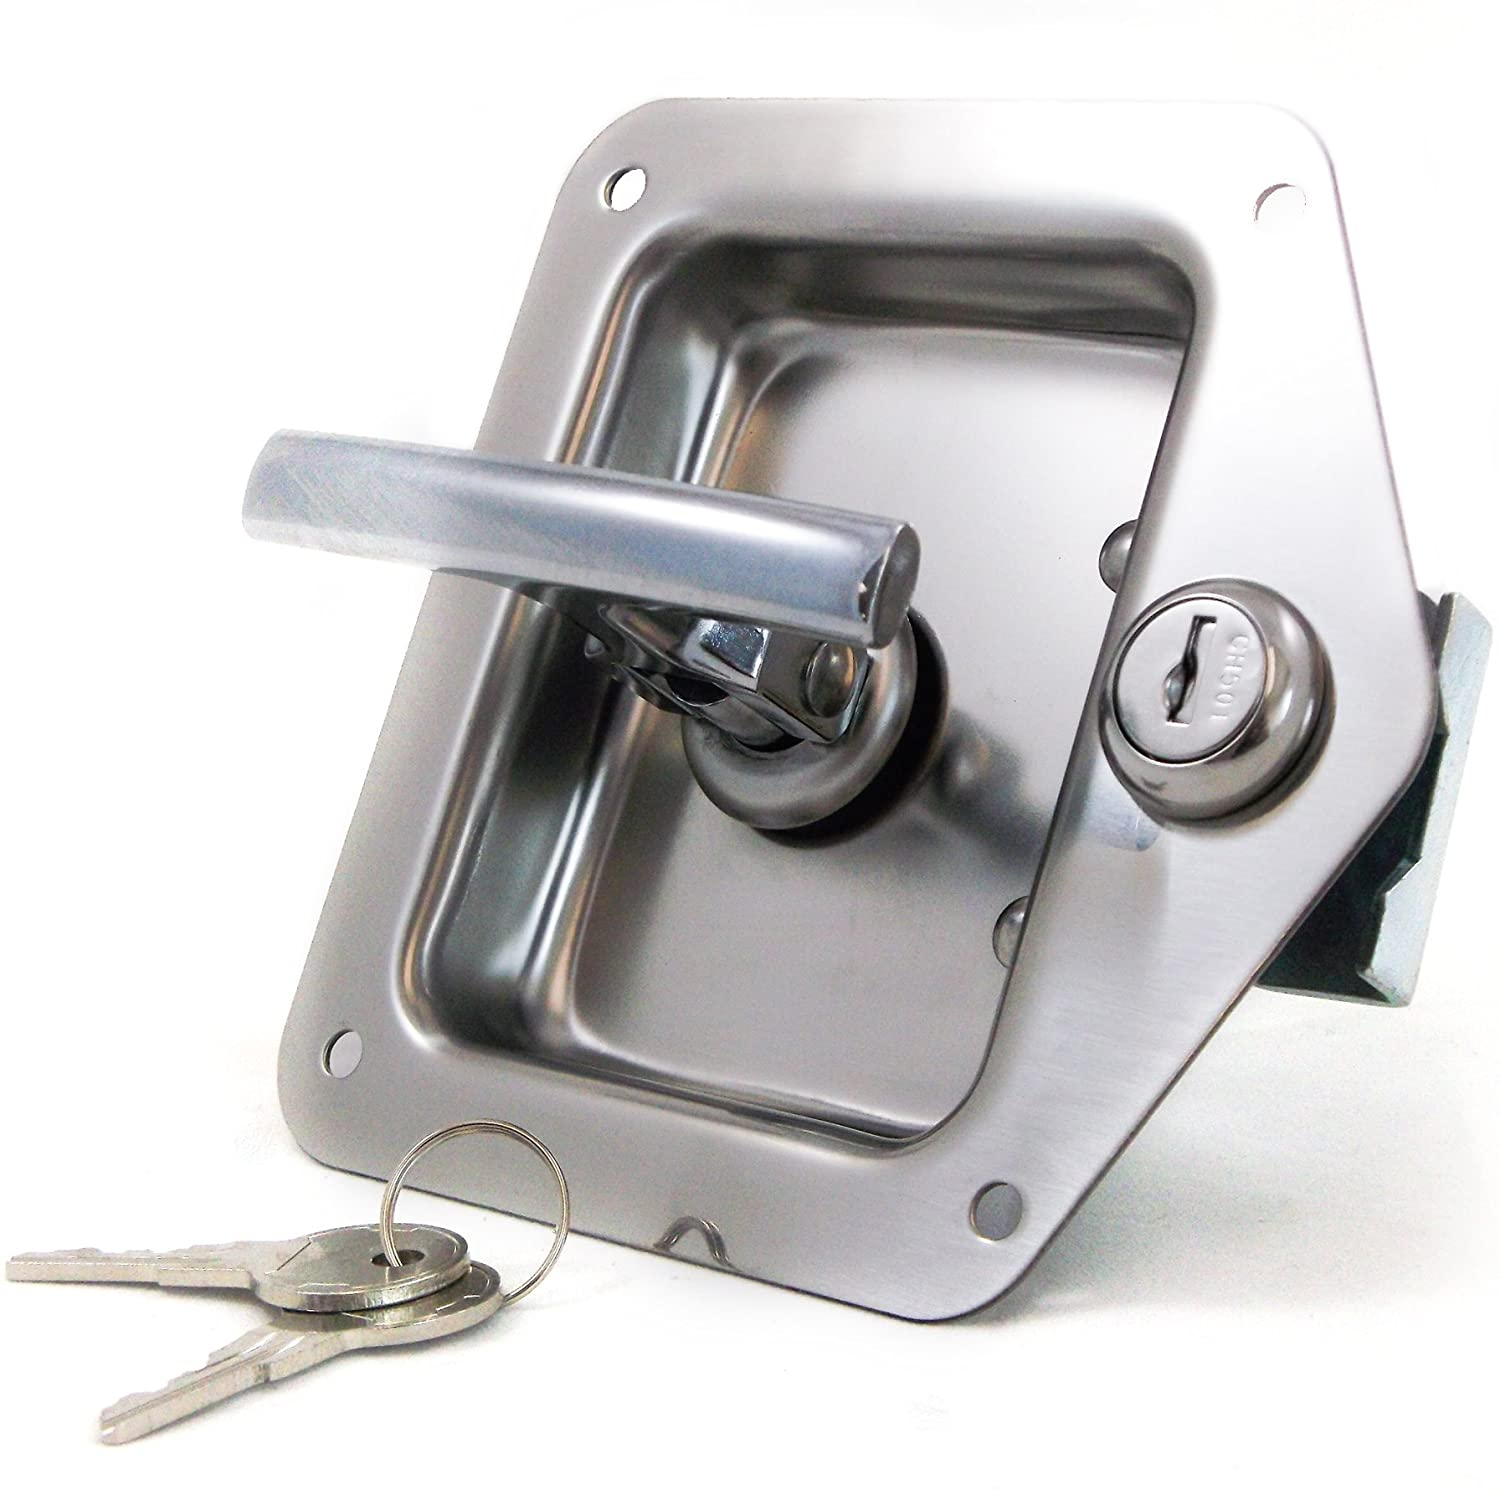 Red Hound Auto 2 Rv Door Tool Box Lock with Gasket T-Handle Latch with Keys 304 Stainless Steel Highly Polished